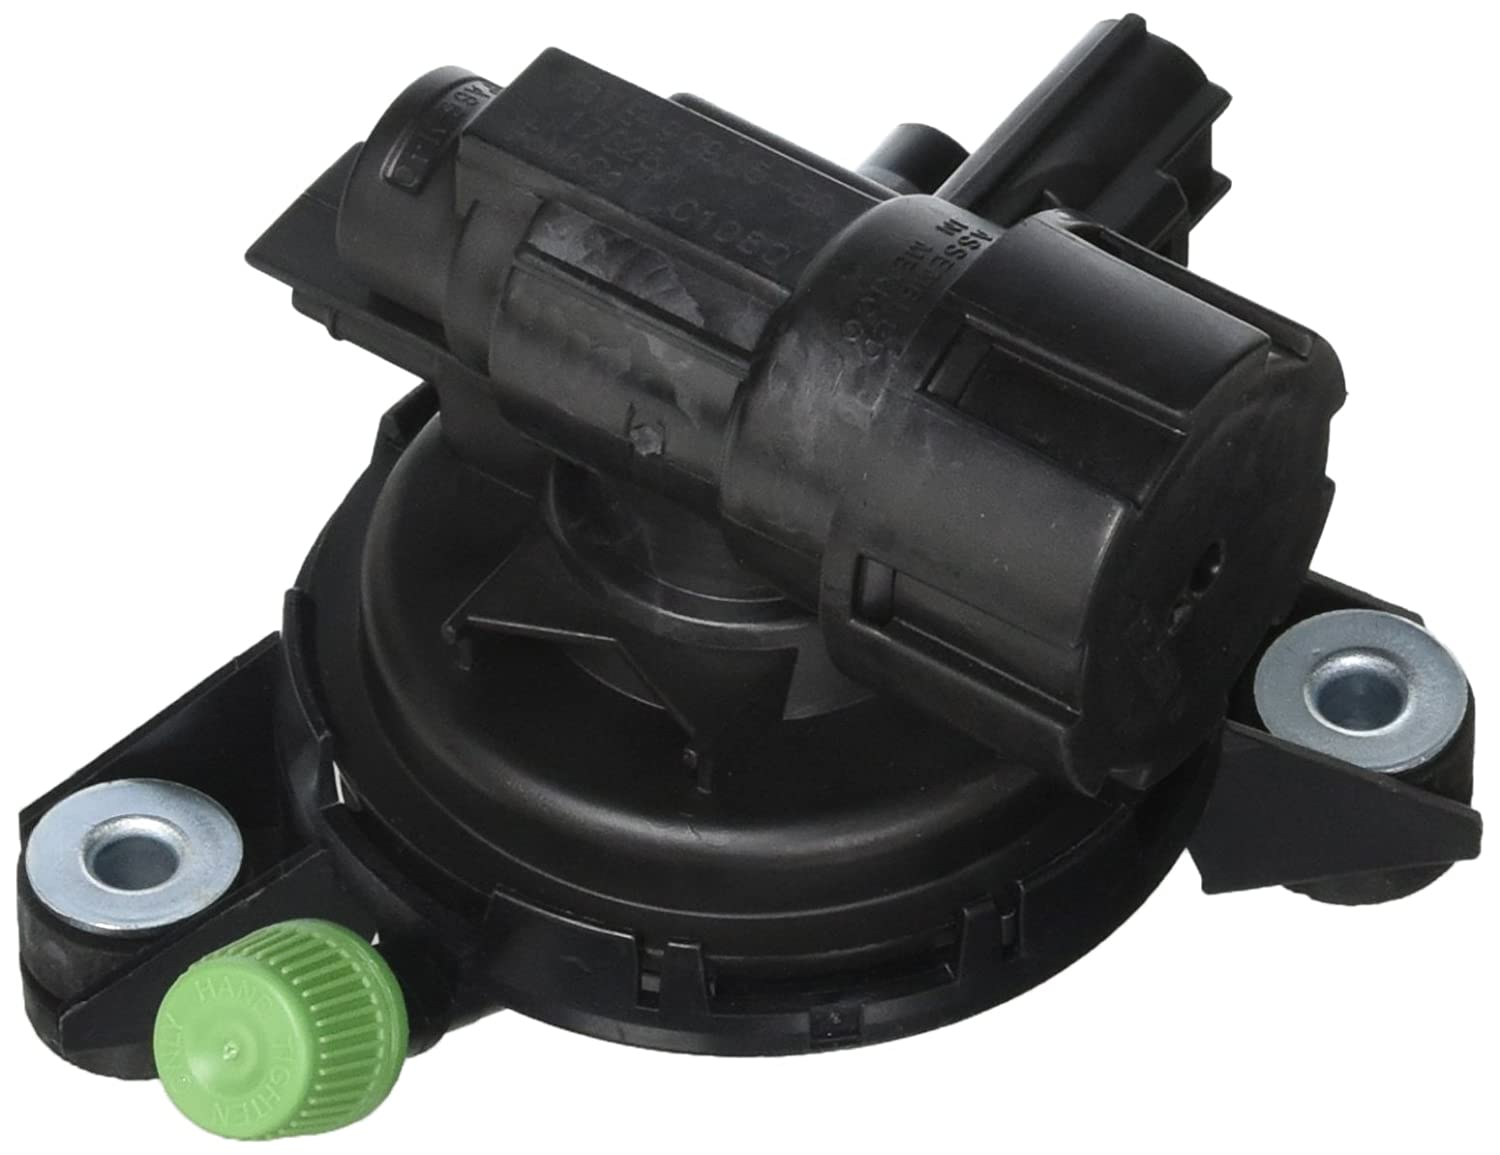 Motorcraft Cx 2127 Canister Purge Valve Automotive 2000 Ford Mustang Location